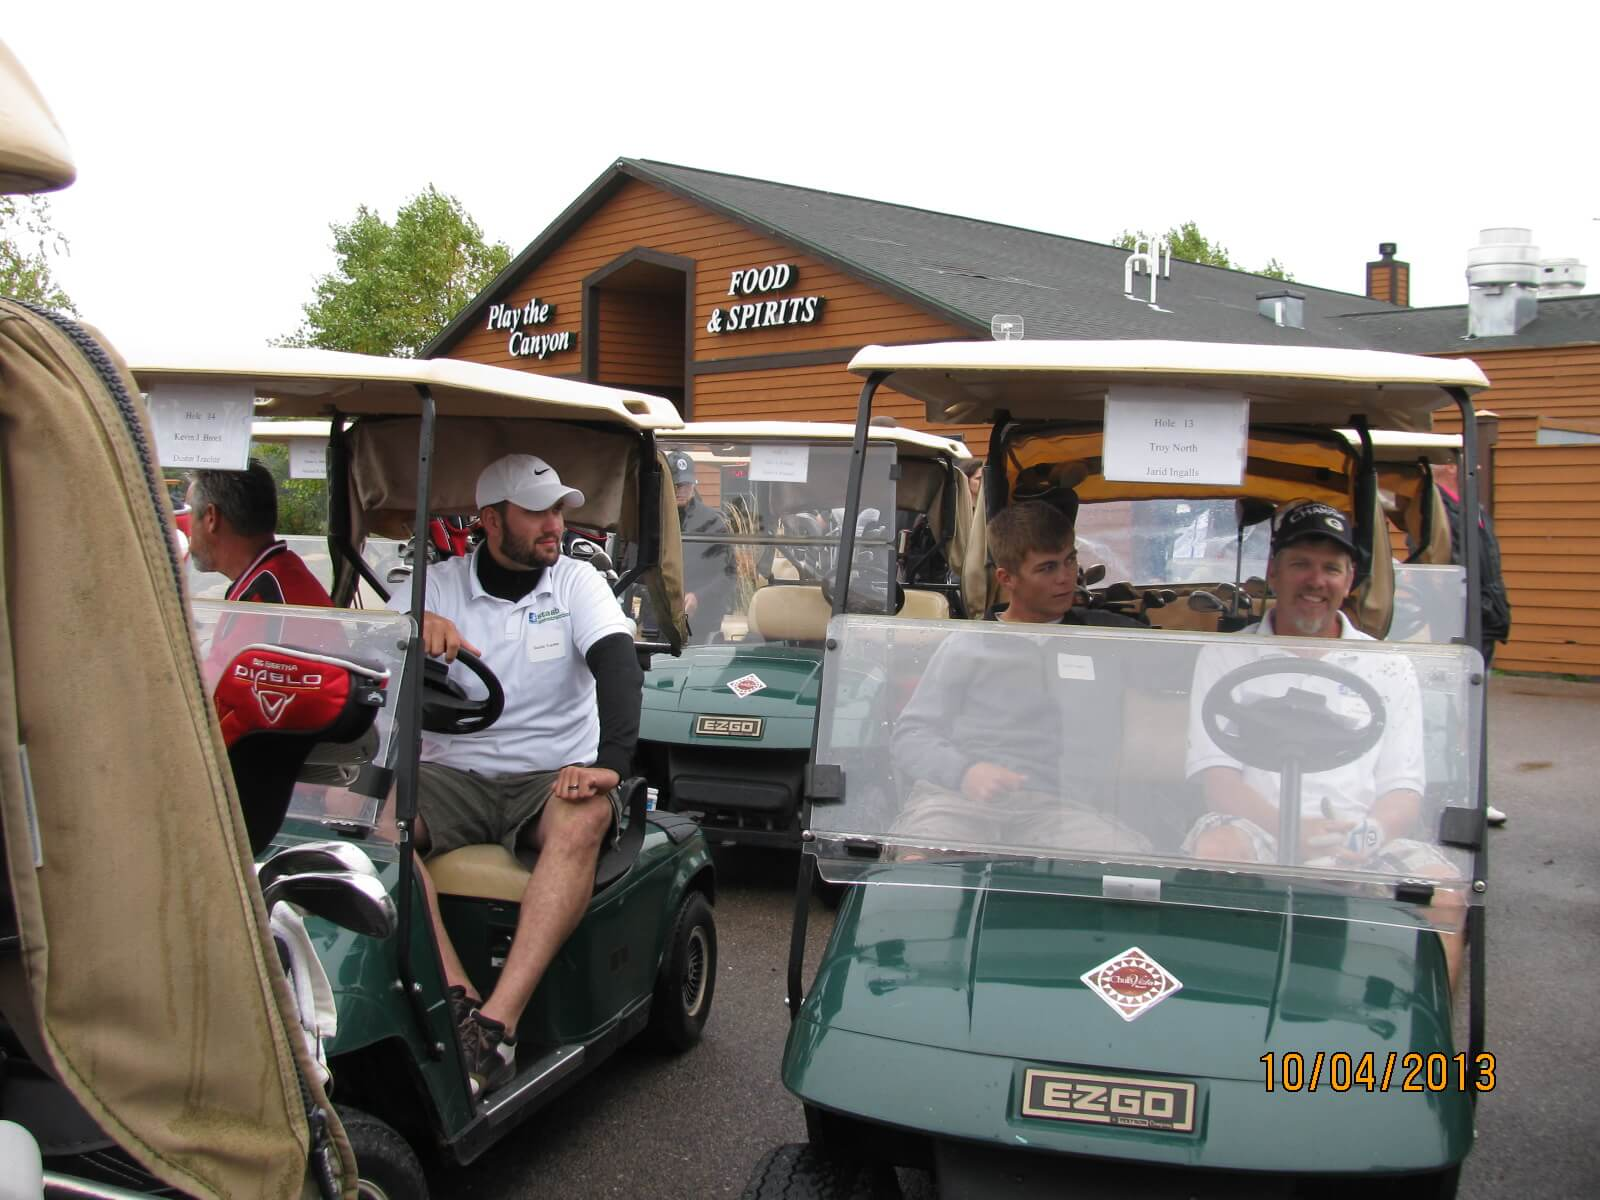 Cruise-for-a-cause-golf-outing-slideshow-2.jpg